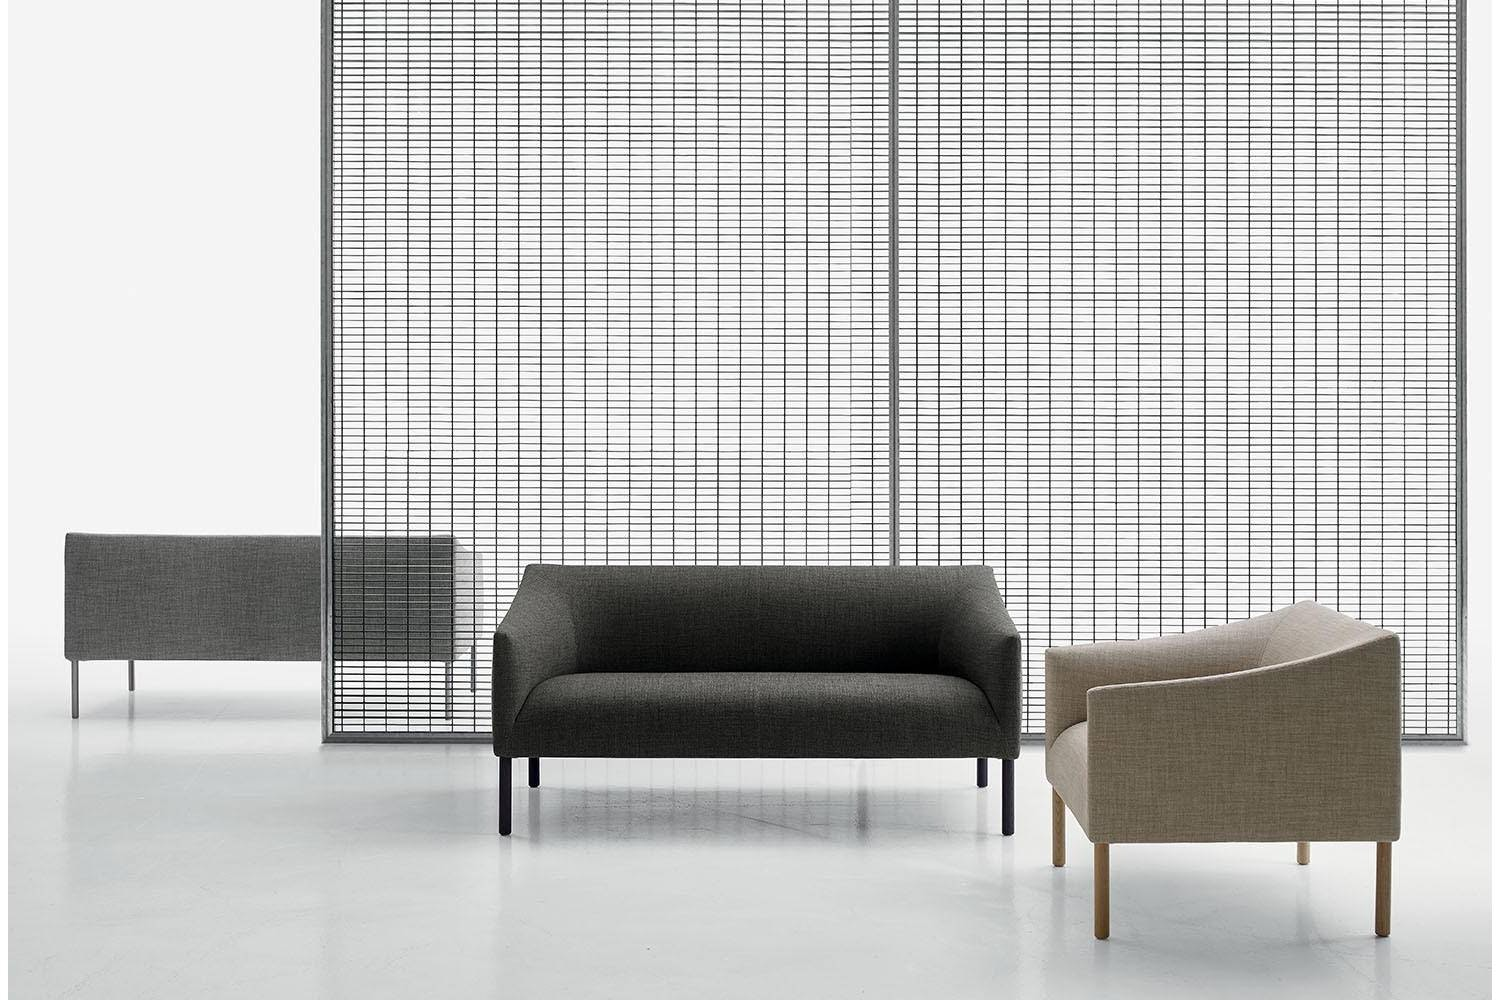 Bankside Sofa by Jasper Morrison for B&B Italia Project